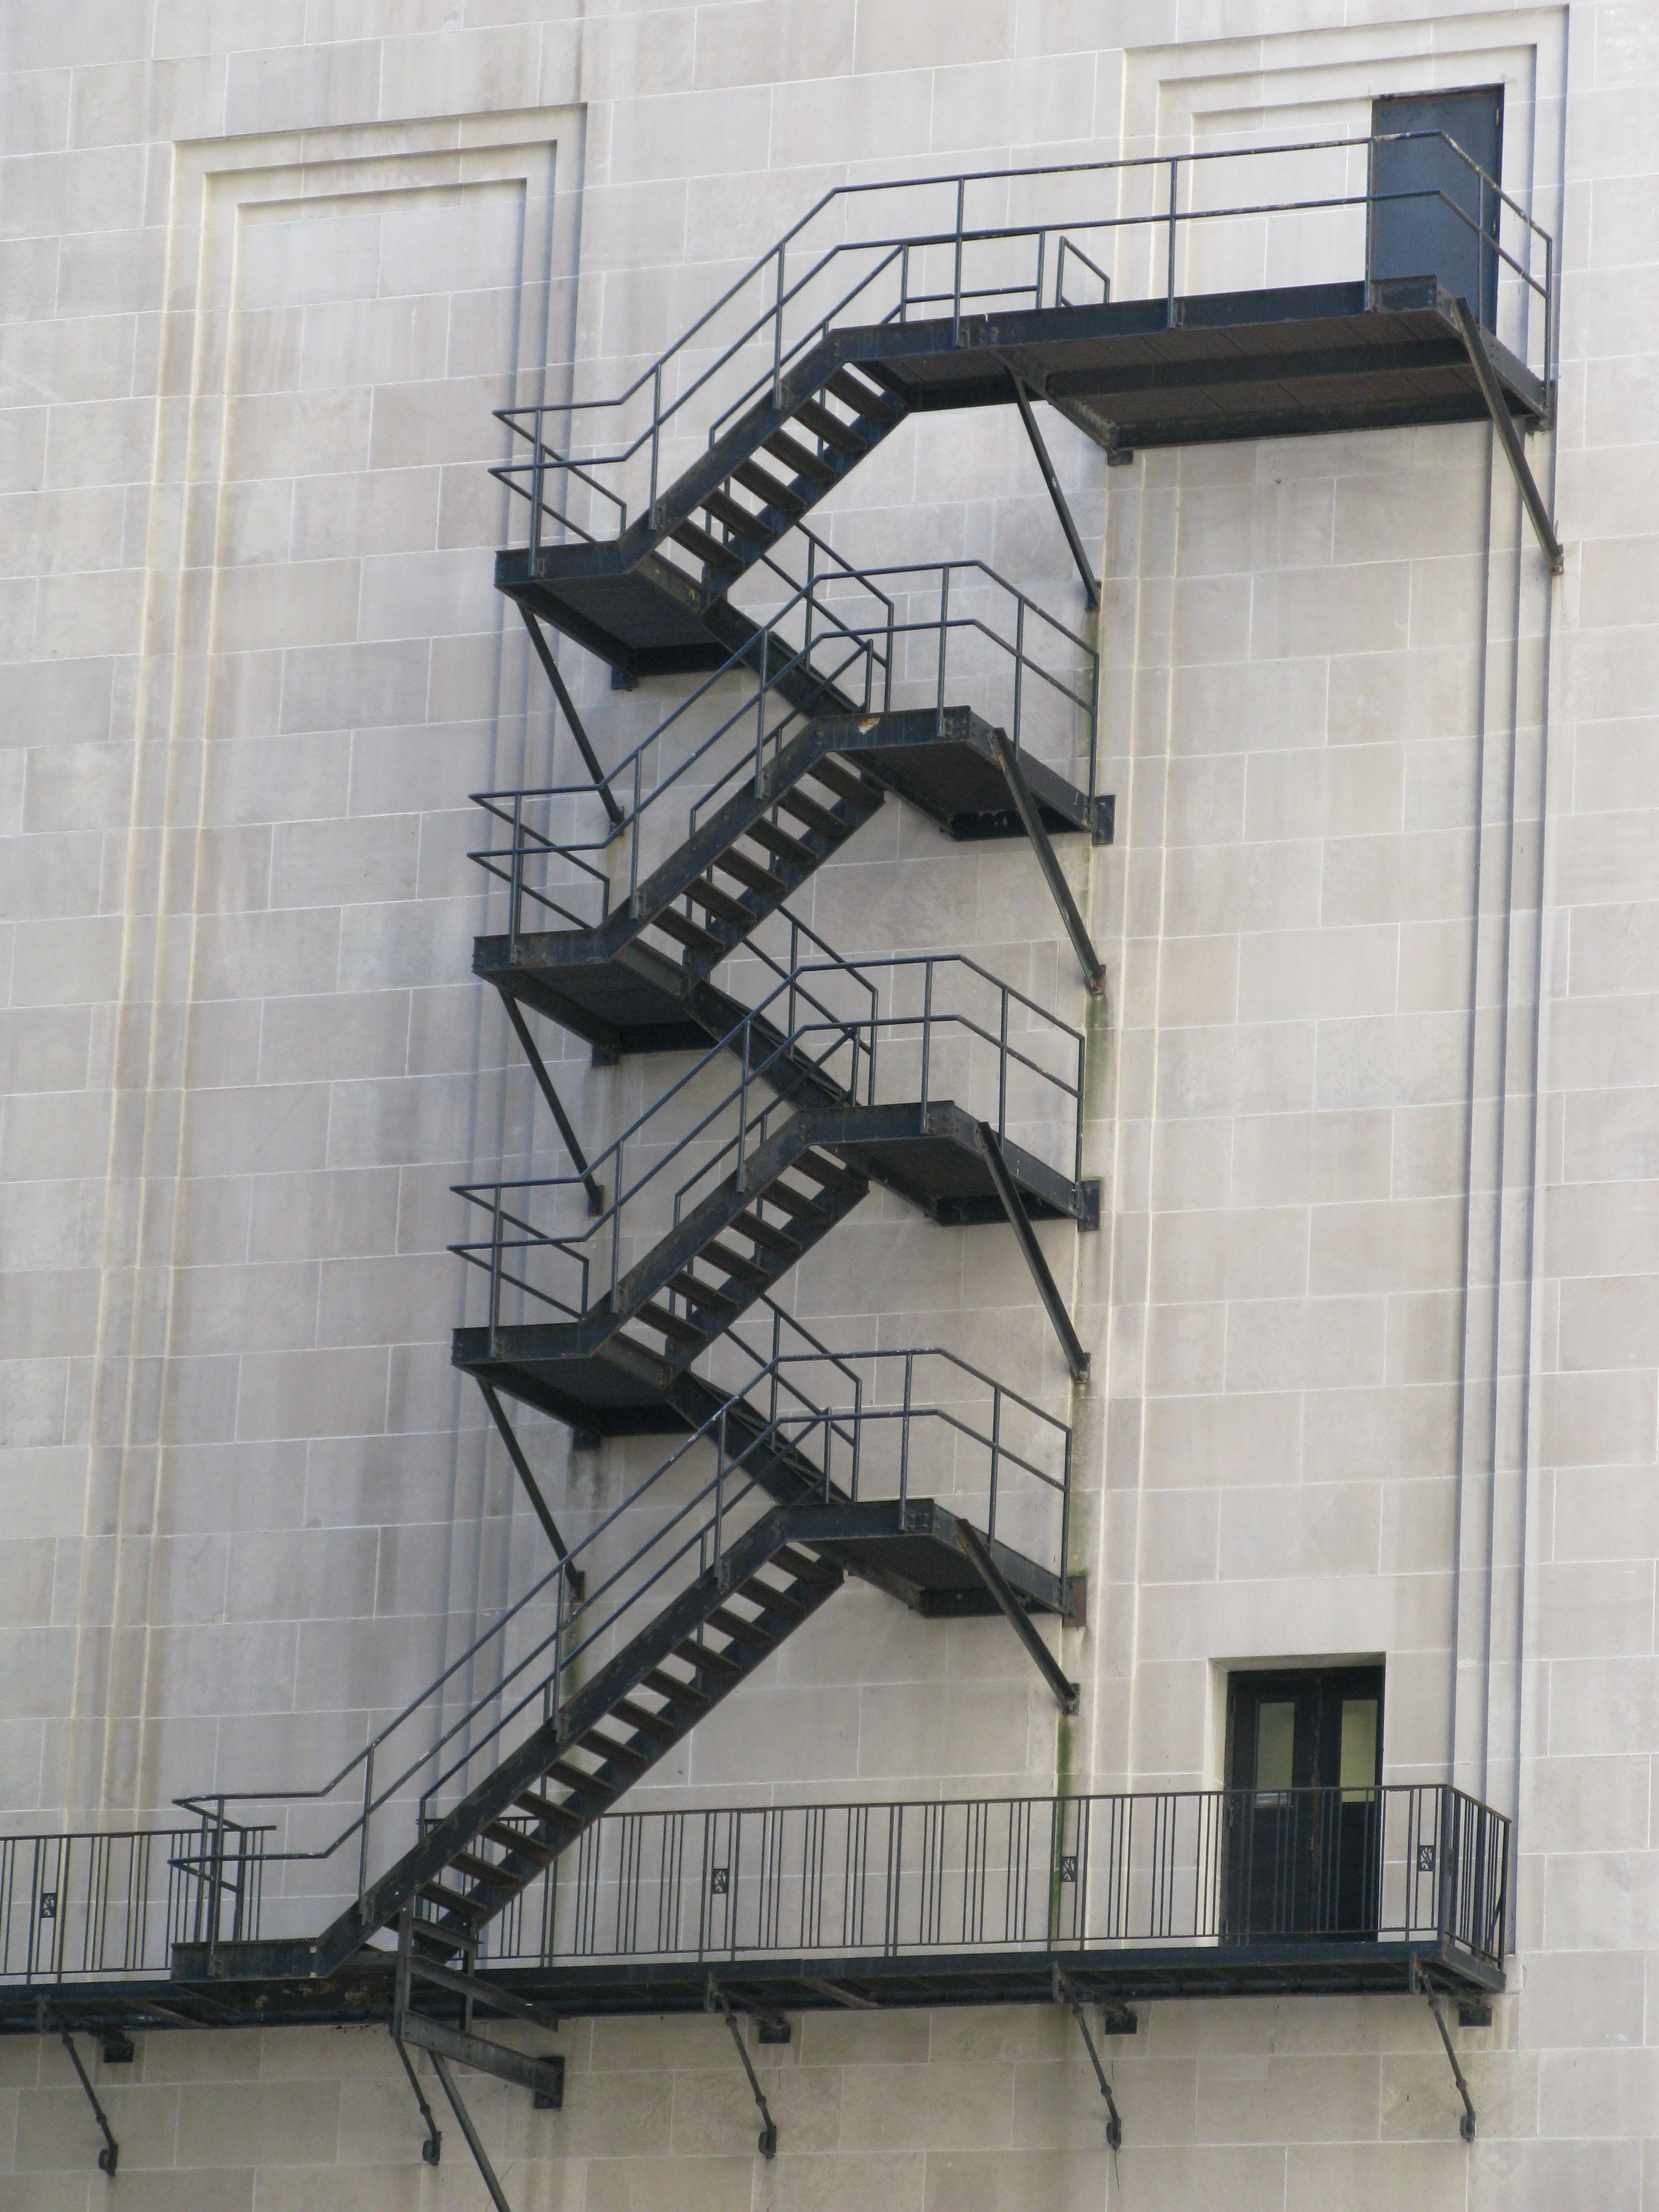 Best Description Chicago Board Of Trade Fire Escape Stairs Jpg 400 x 300